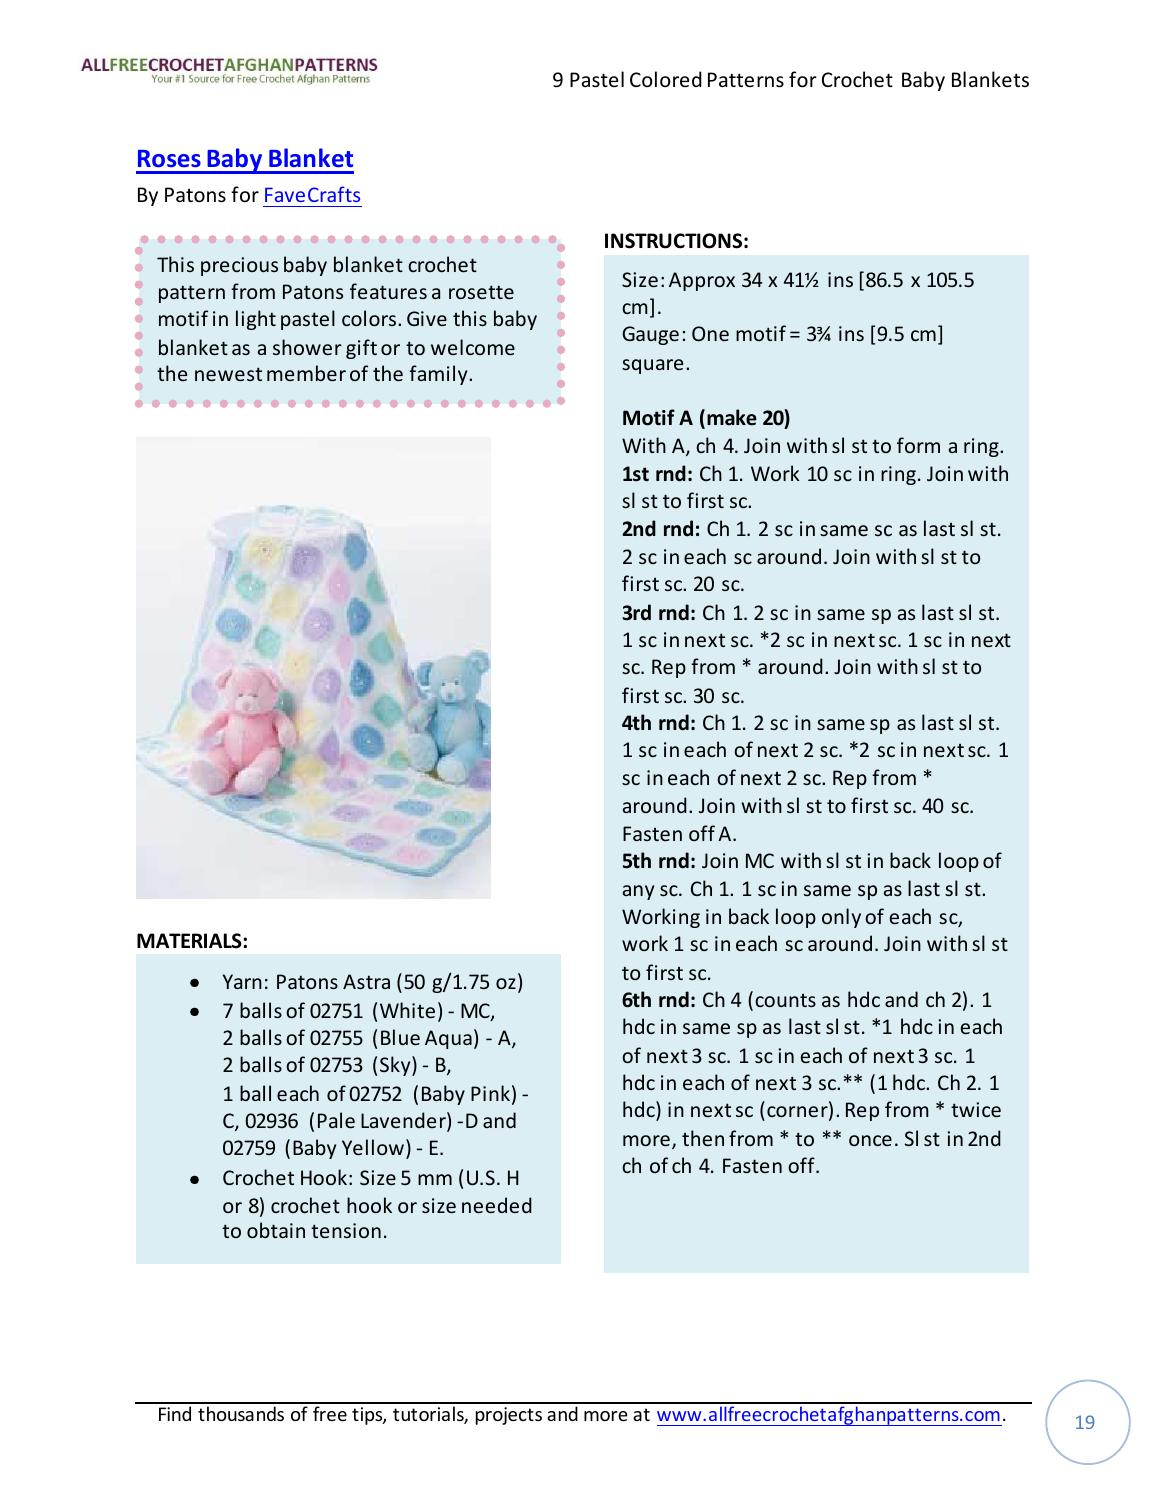 9 pastel colored patterns for crochet baby blankets by Paqui Miranda ...